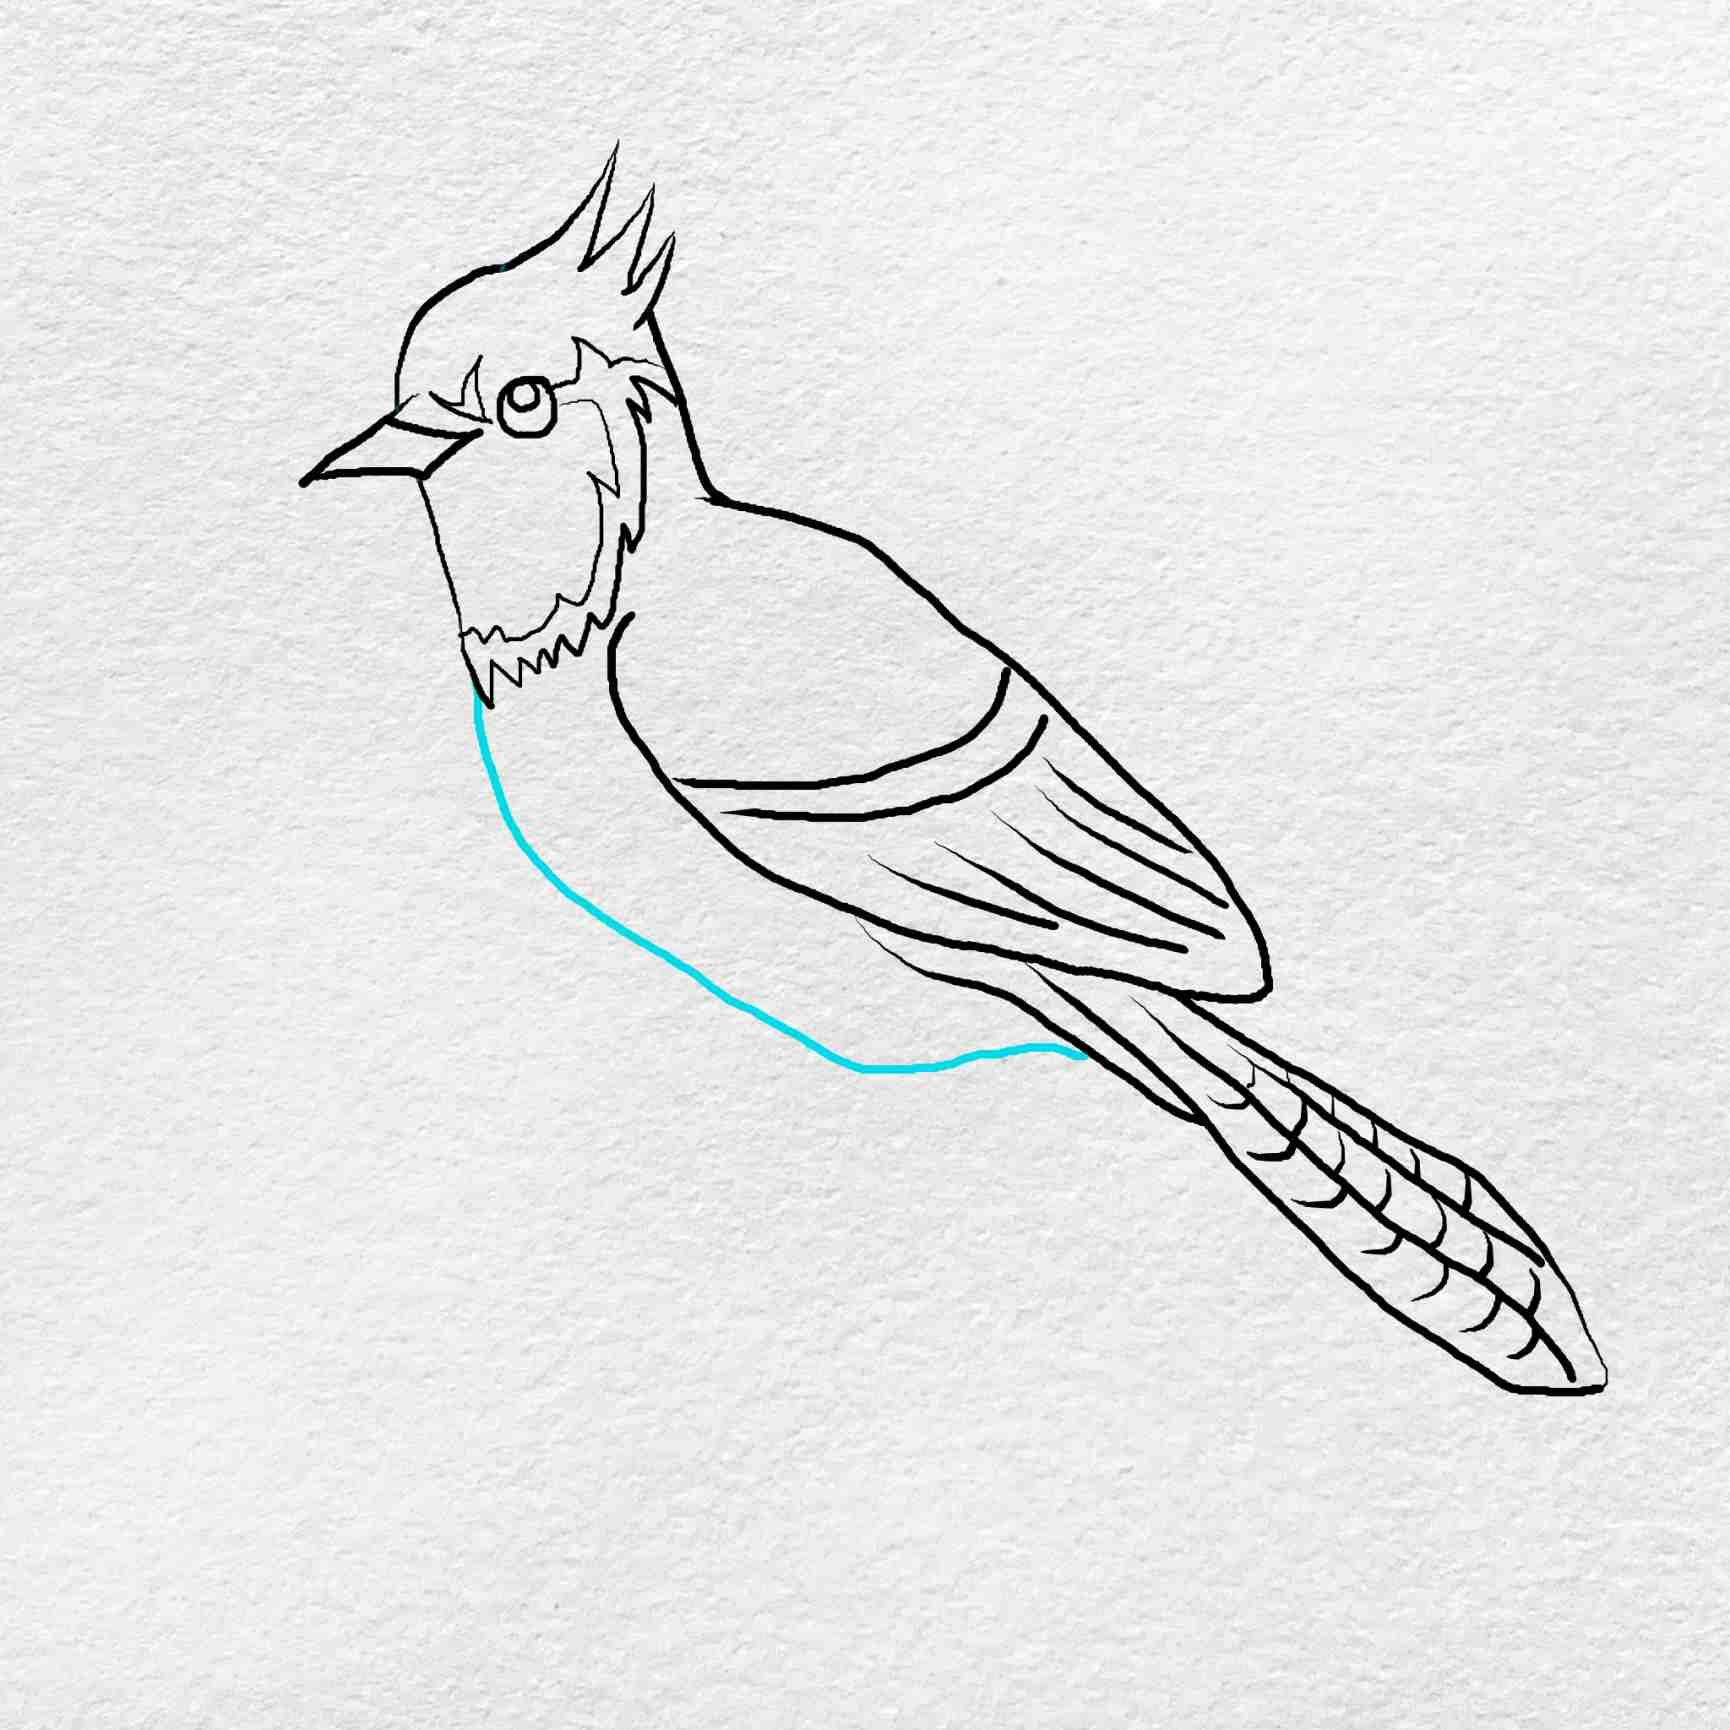 How To Draw A Blue Jay: Step 7